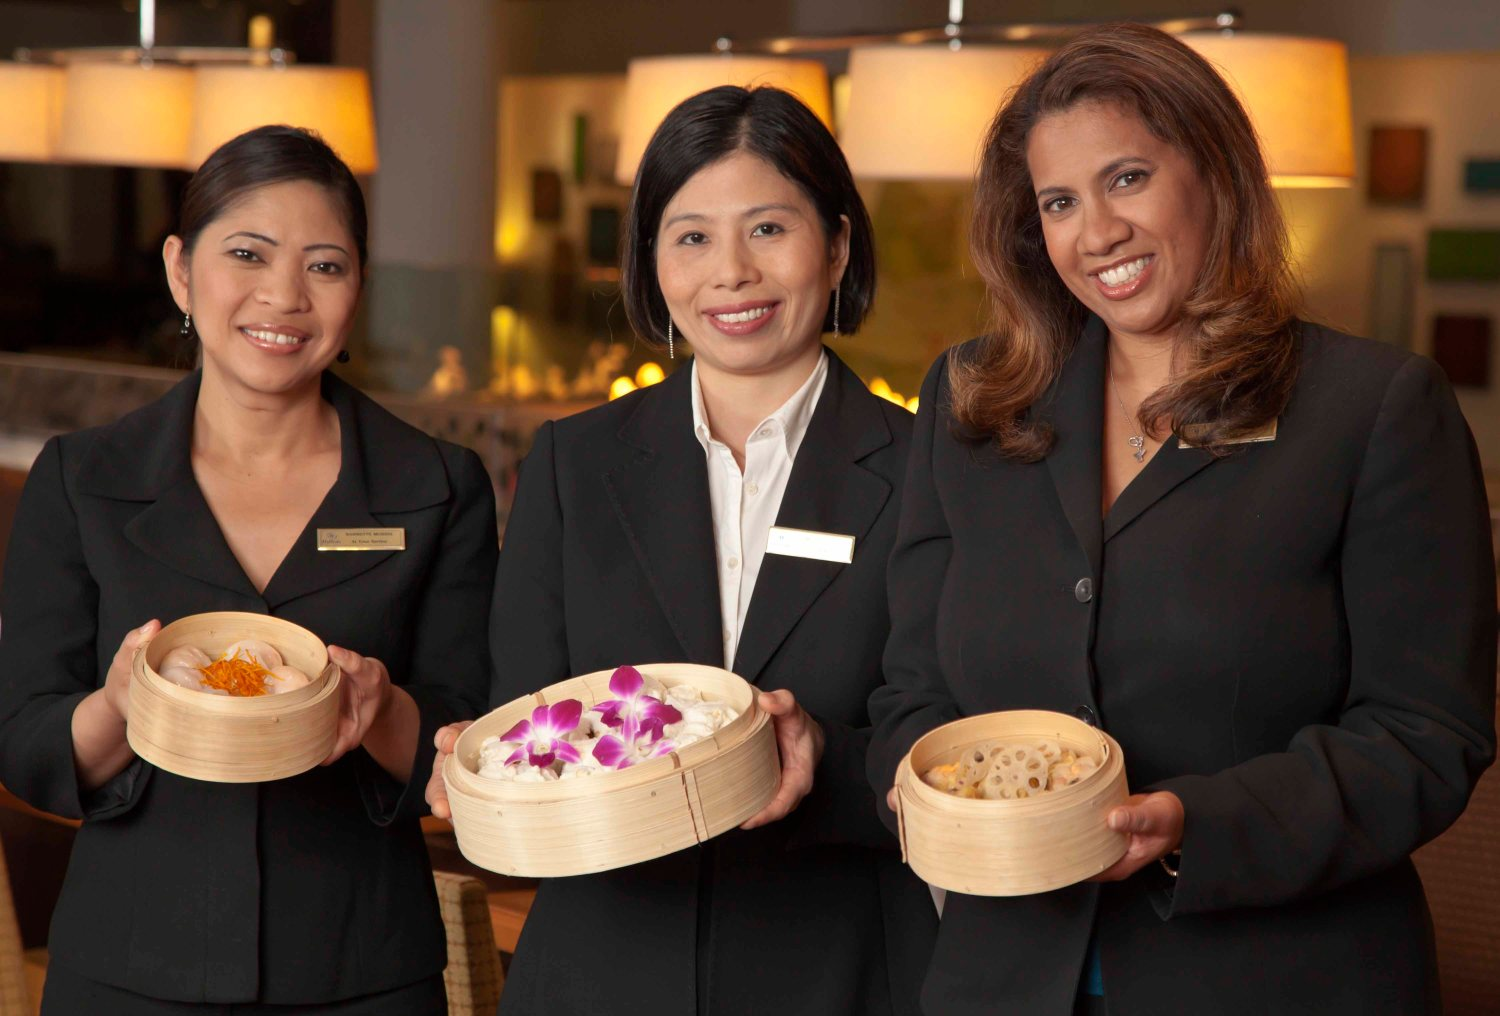 Employees/ Hostesses Hilton Hotel Holding examples of Chinese breakfast